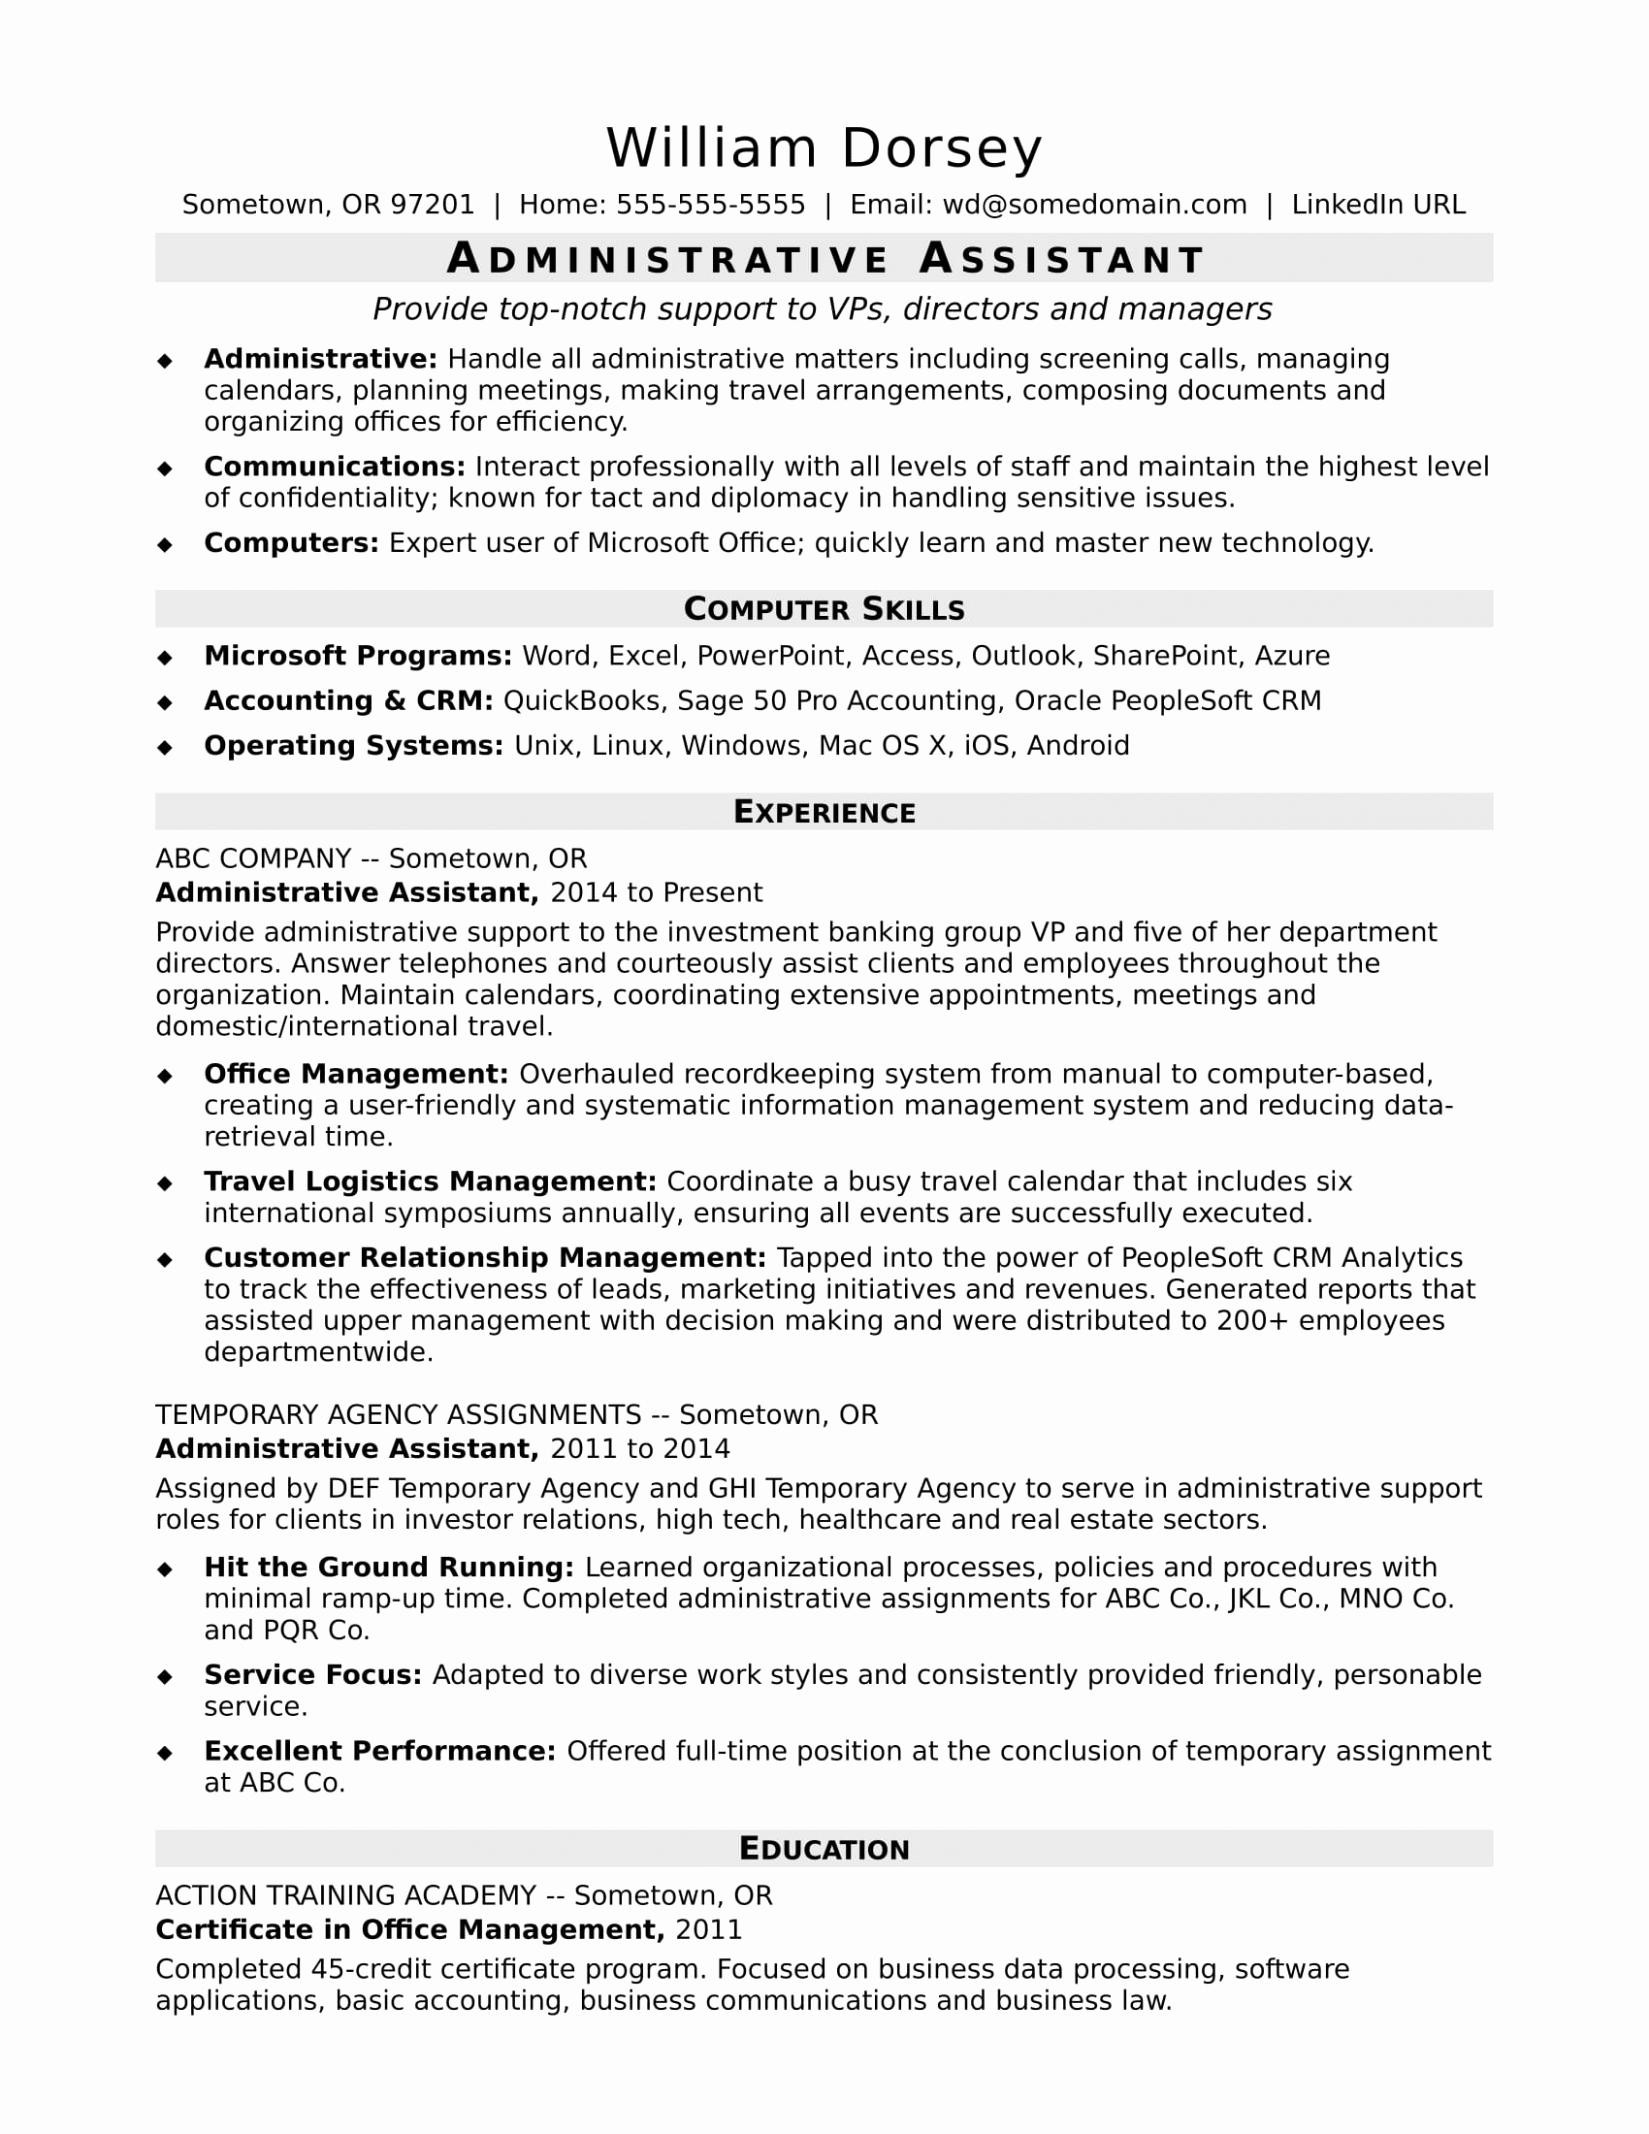 Professional Accountant Resume Template - Dynamic Resume Templates